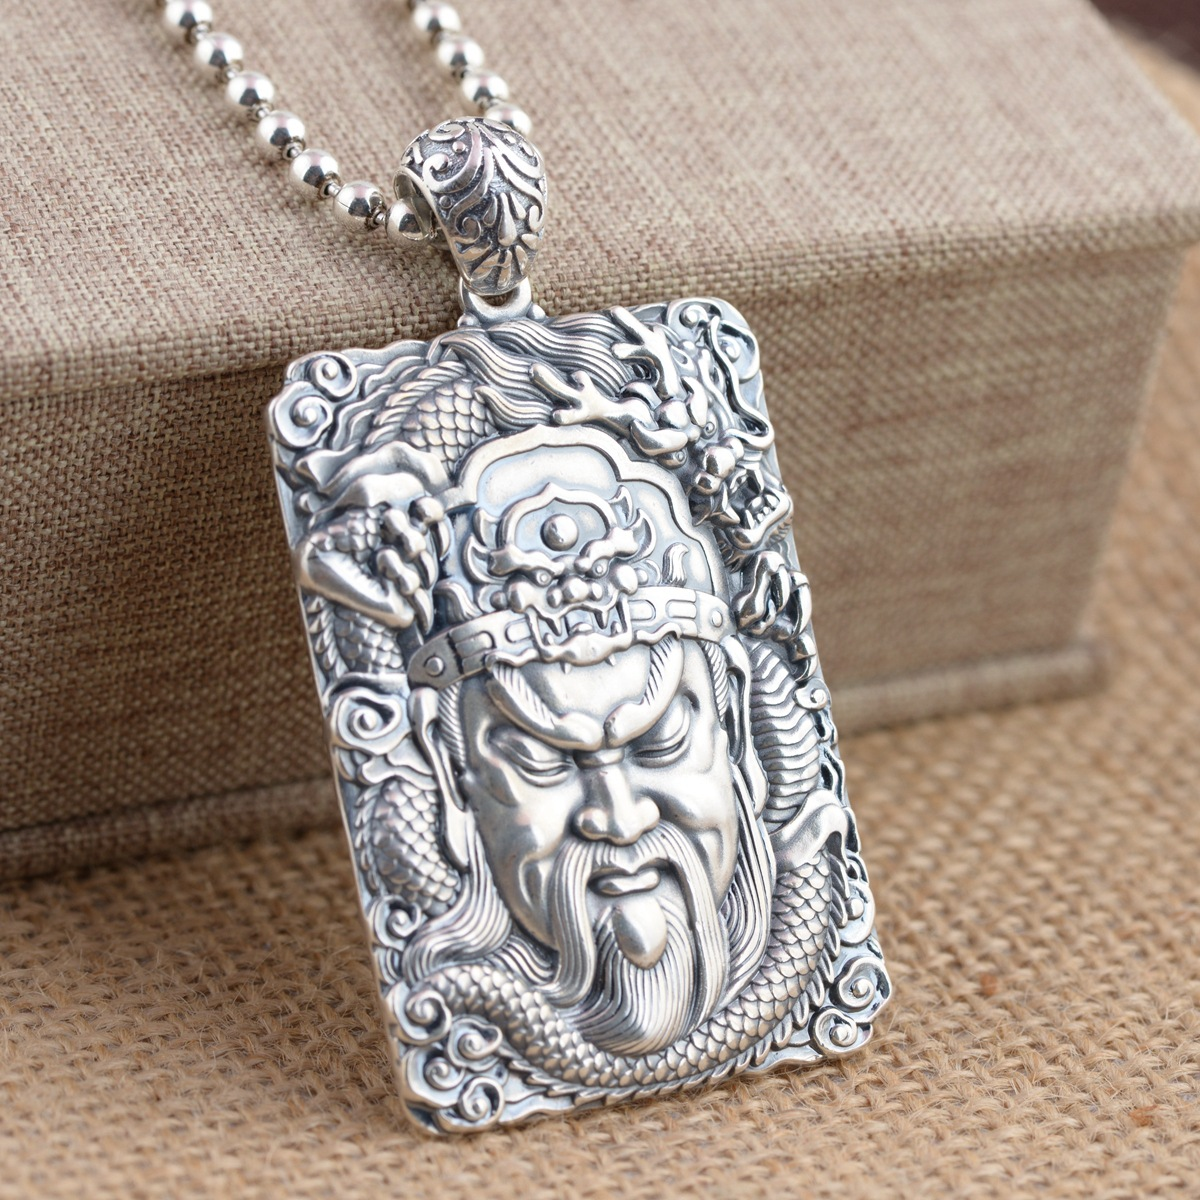 2018 Special Offer Direct Selling Emperor Jewelry Line S990 Sterling Pendant Loyalty Archaize Style Male Square Guan Gong